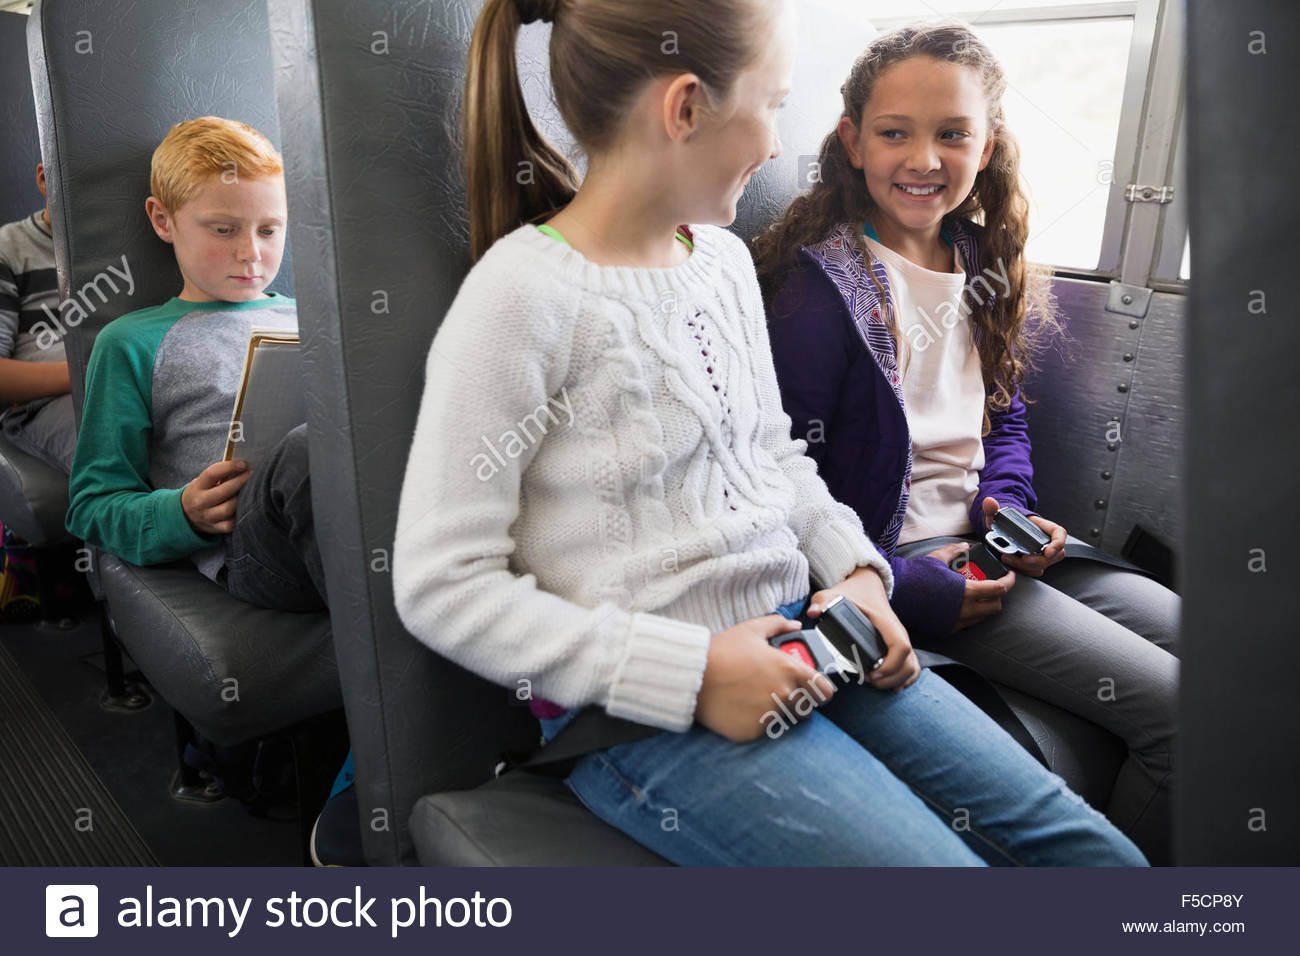 Schoolgirls fastening seat belts on school bus - Stock Image